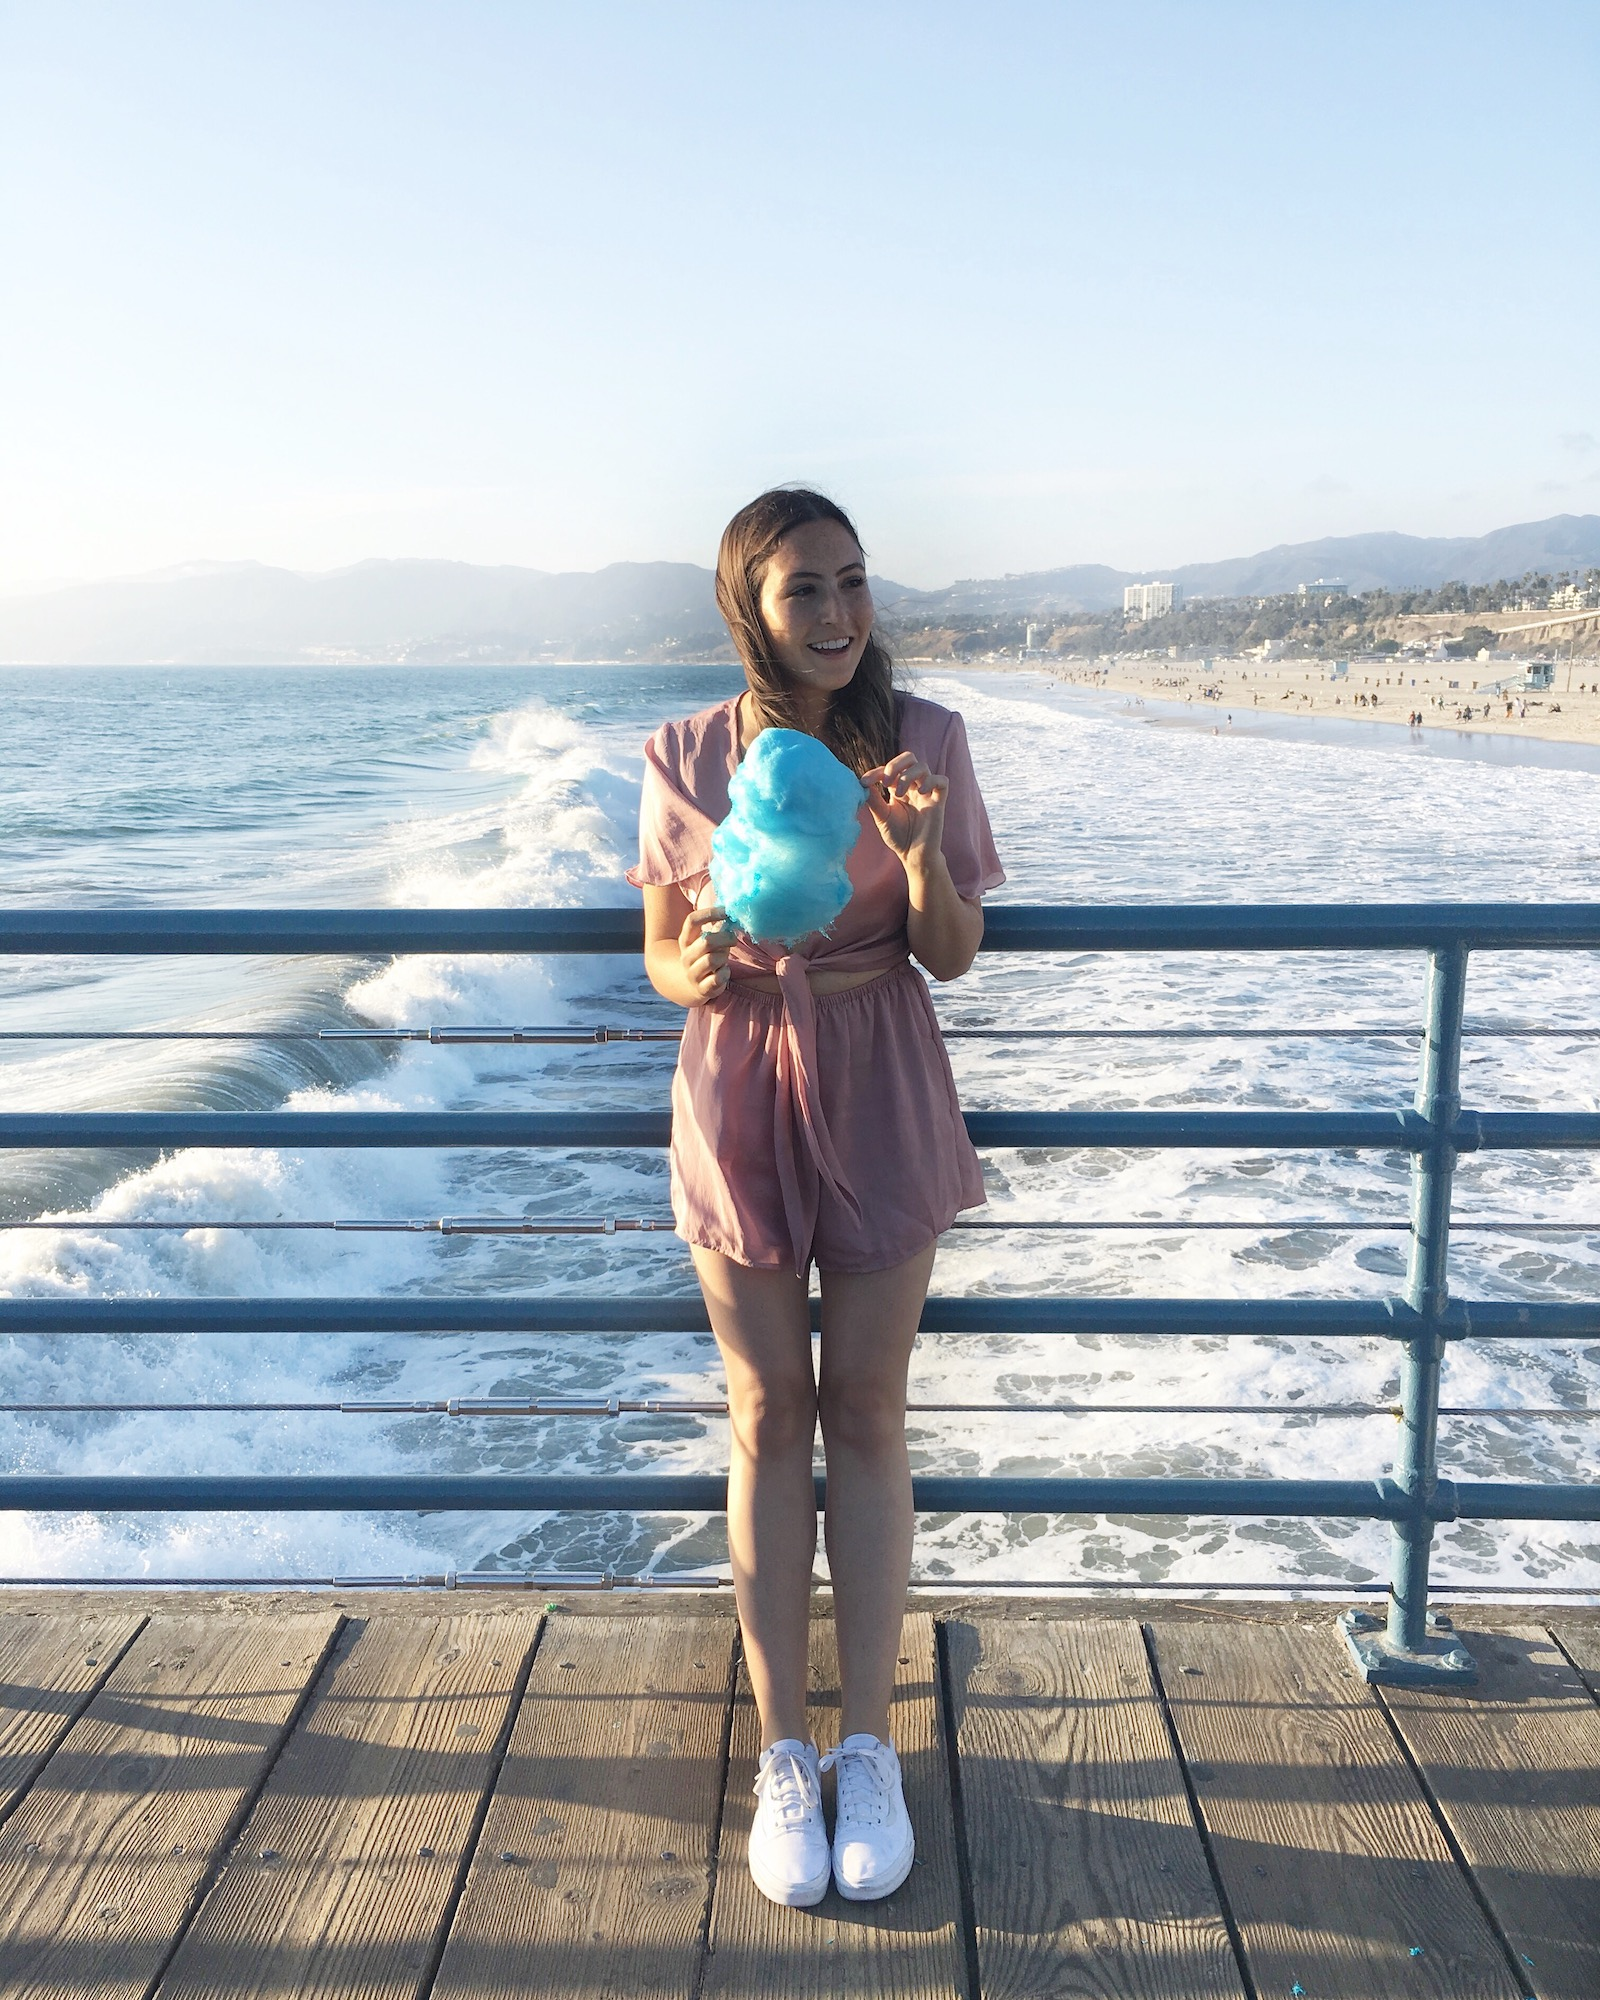 Santa Monica Pier Cotton Candy